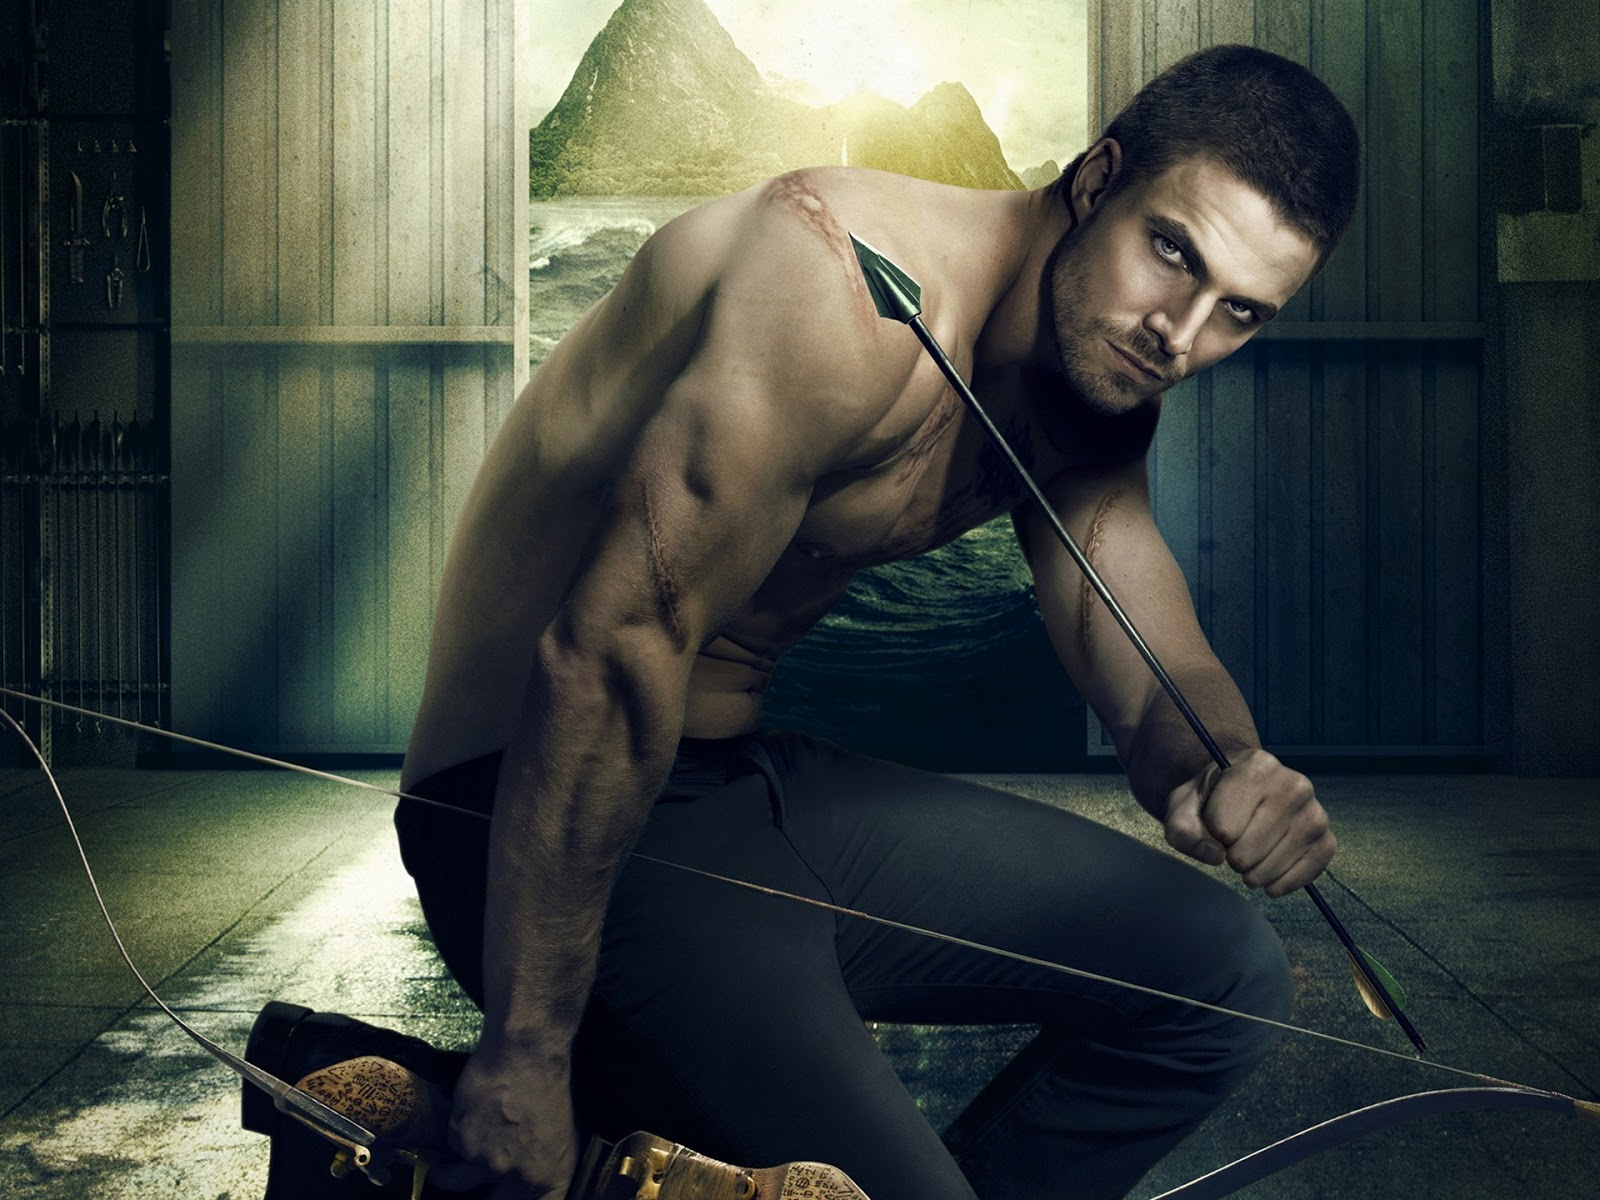 oliver queen green arrow wallpapers - Oliver Queen Green Arrow Wallpapers HD Wallpapers